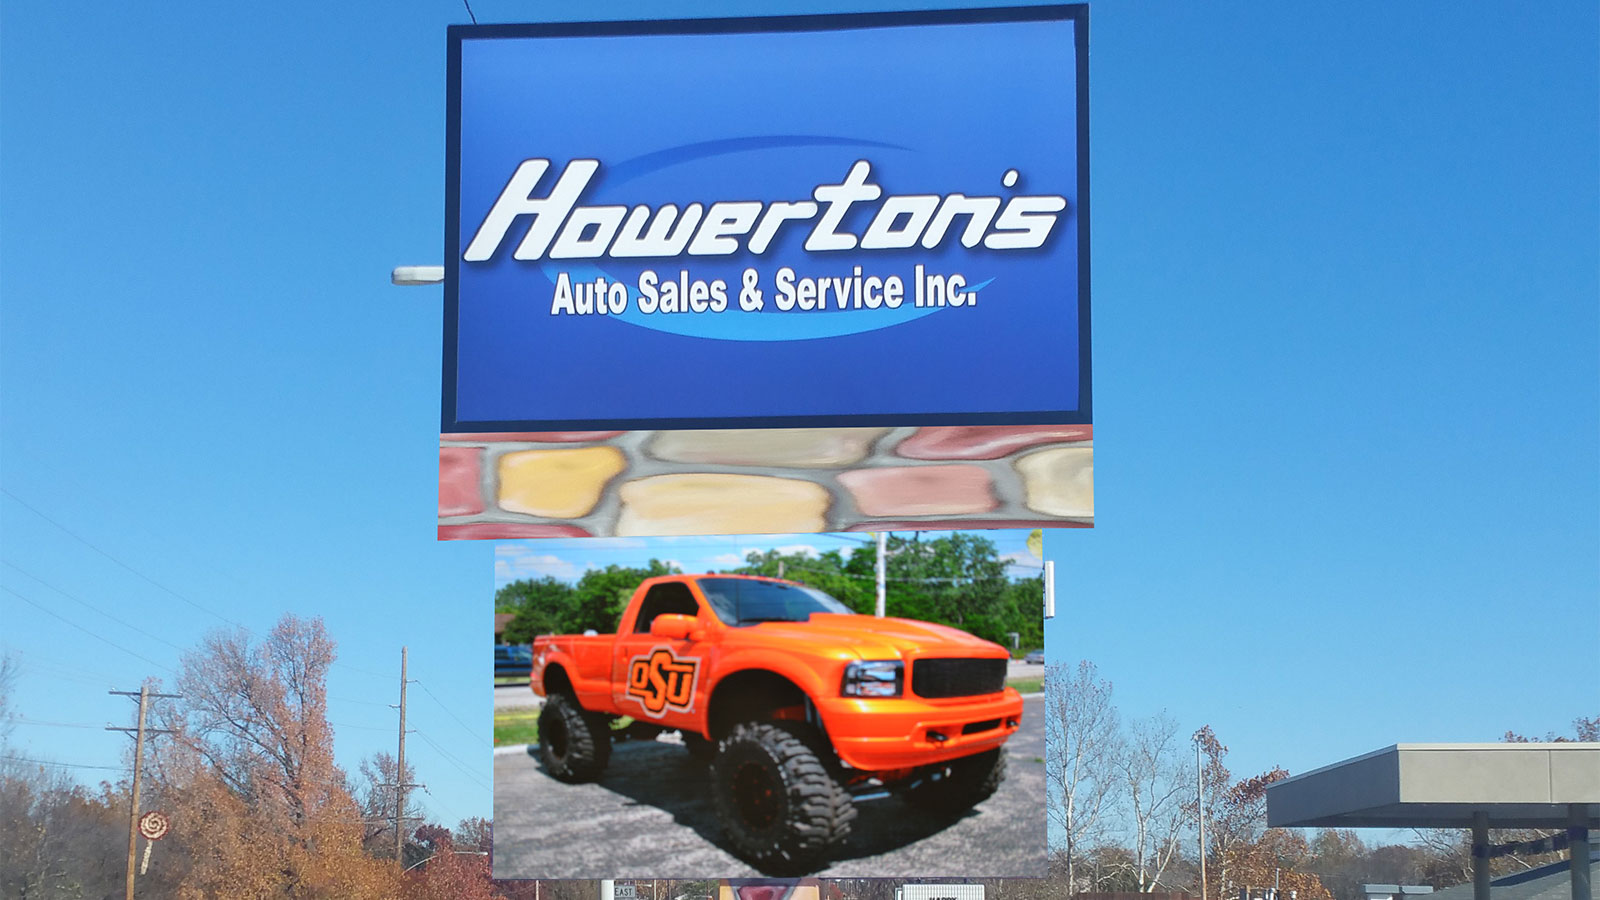 Howerton'sAutoSales